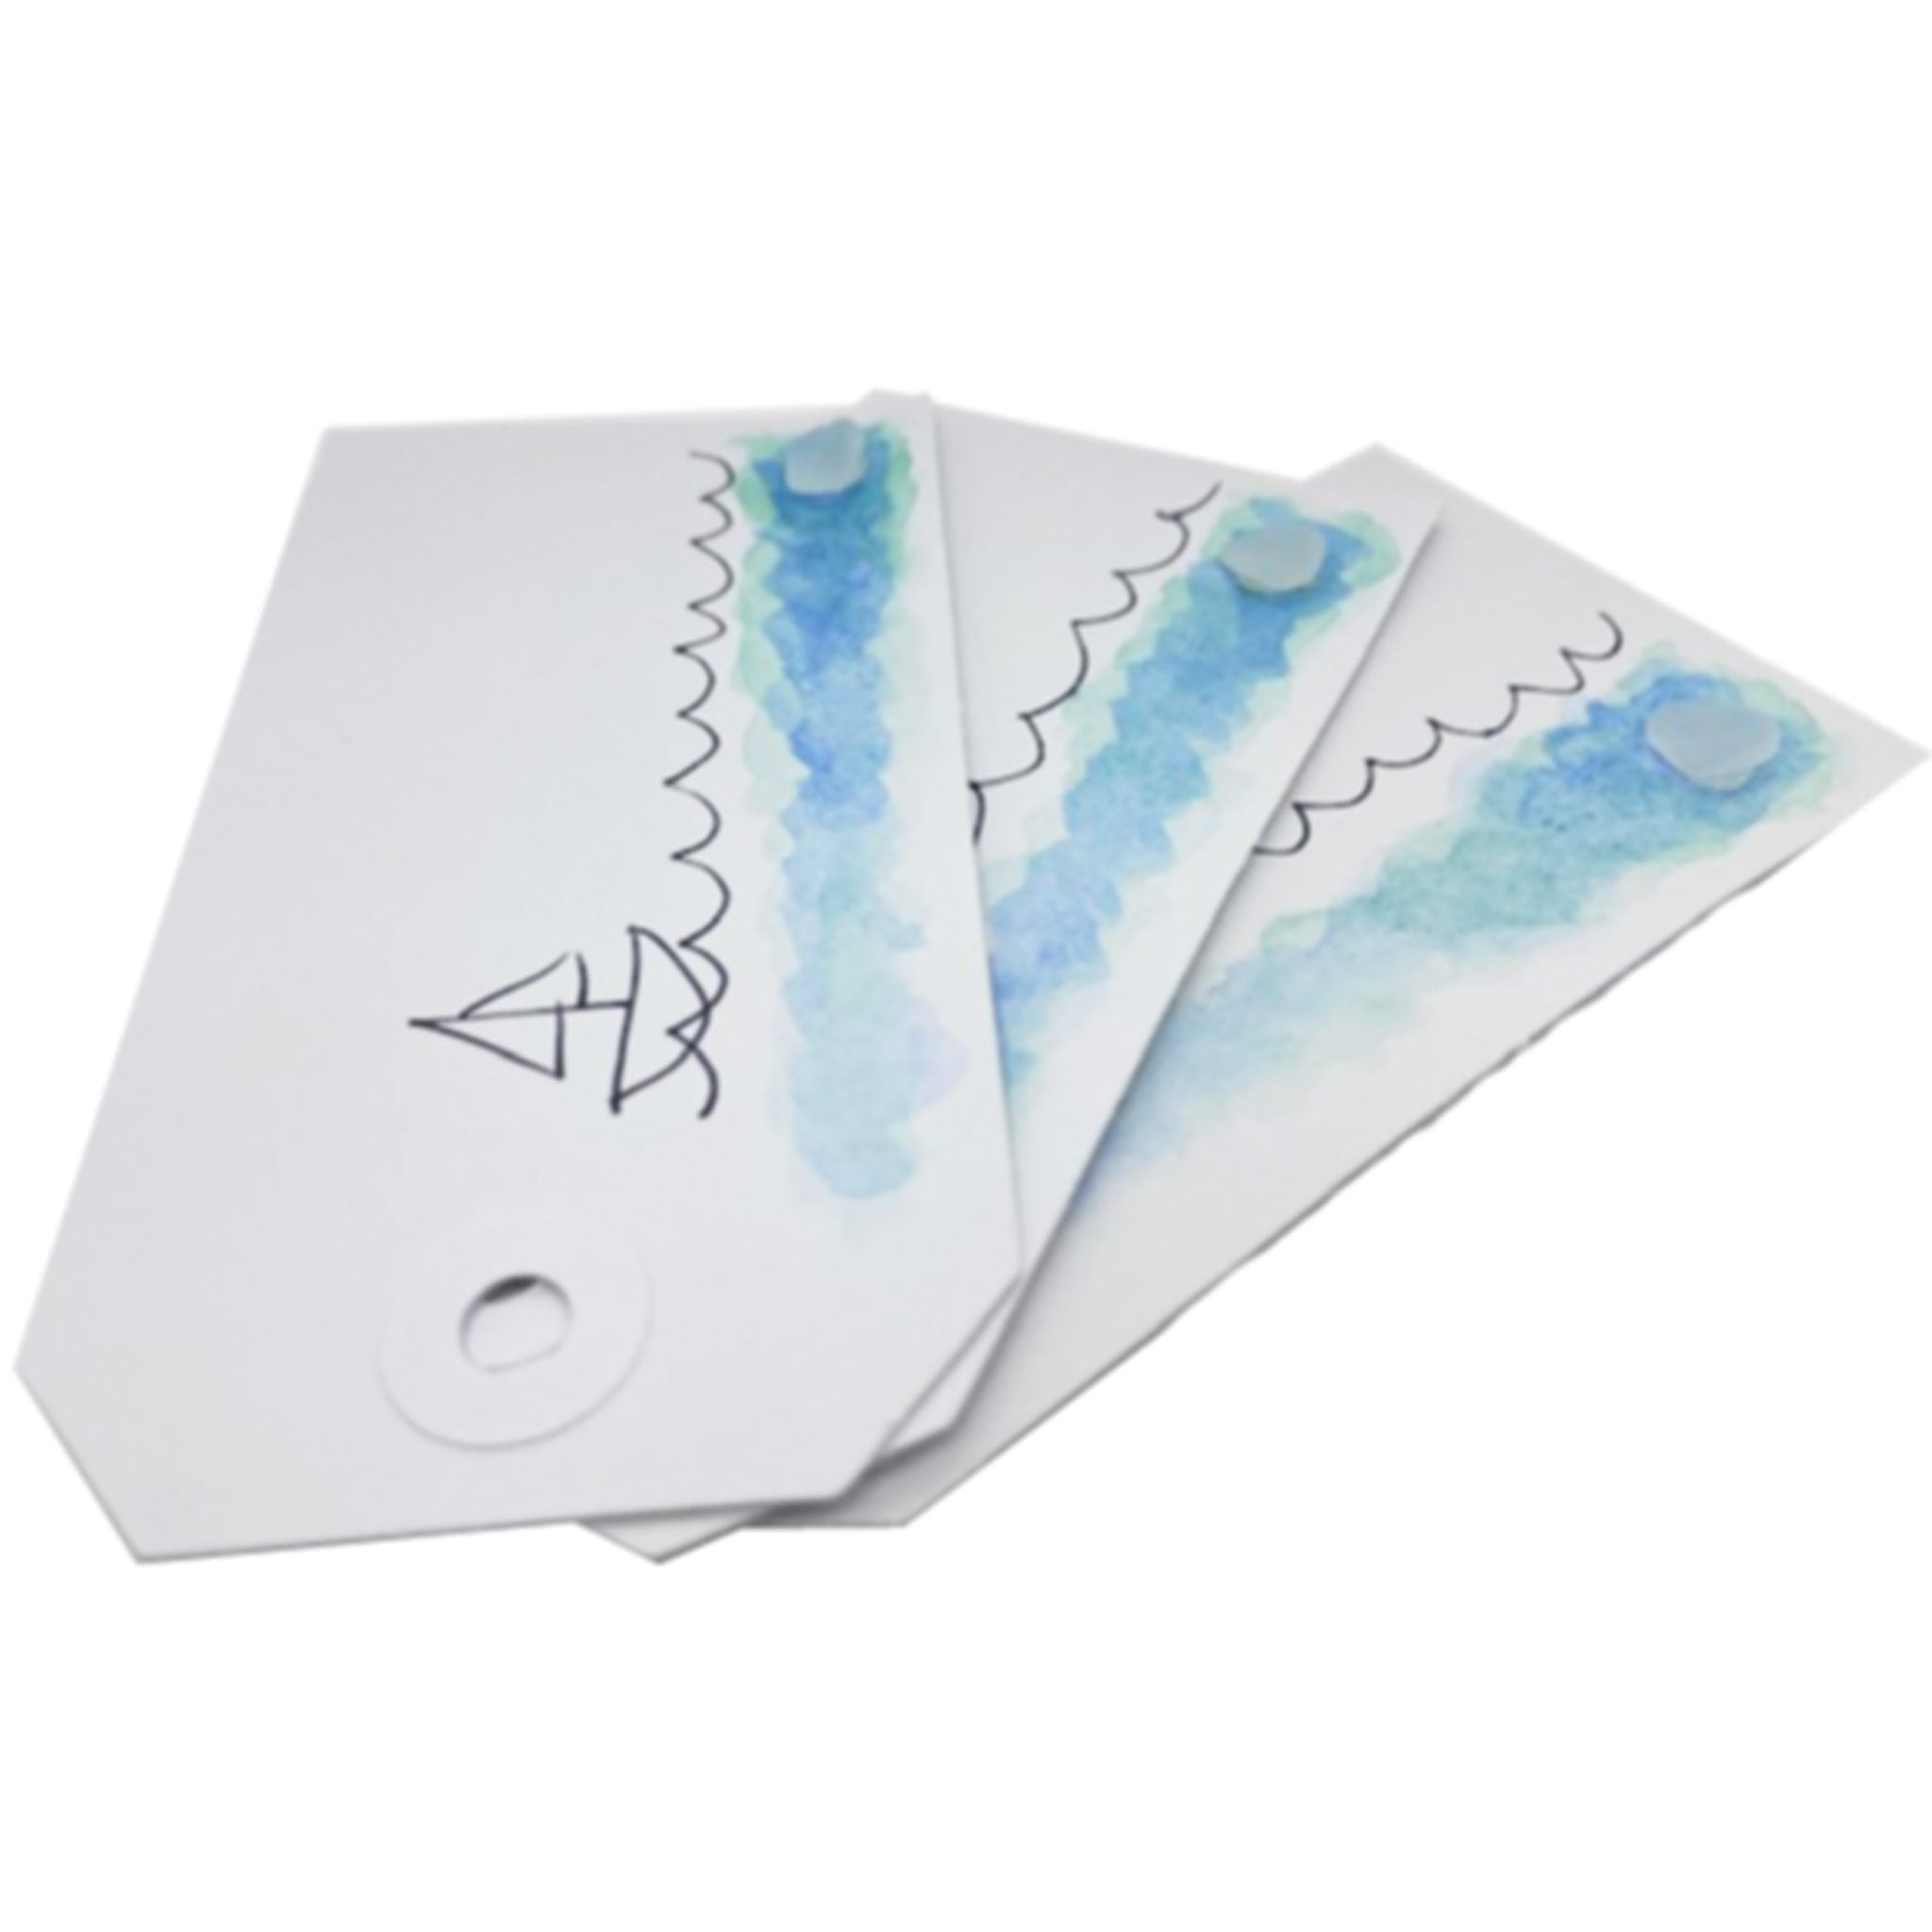 sea glass gift tags for presents kriket broadhurst jewelry Sydney